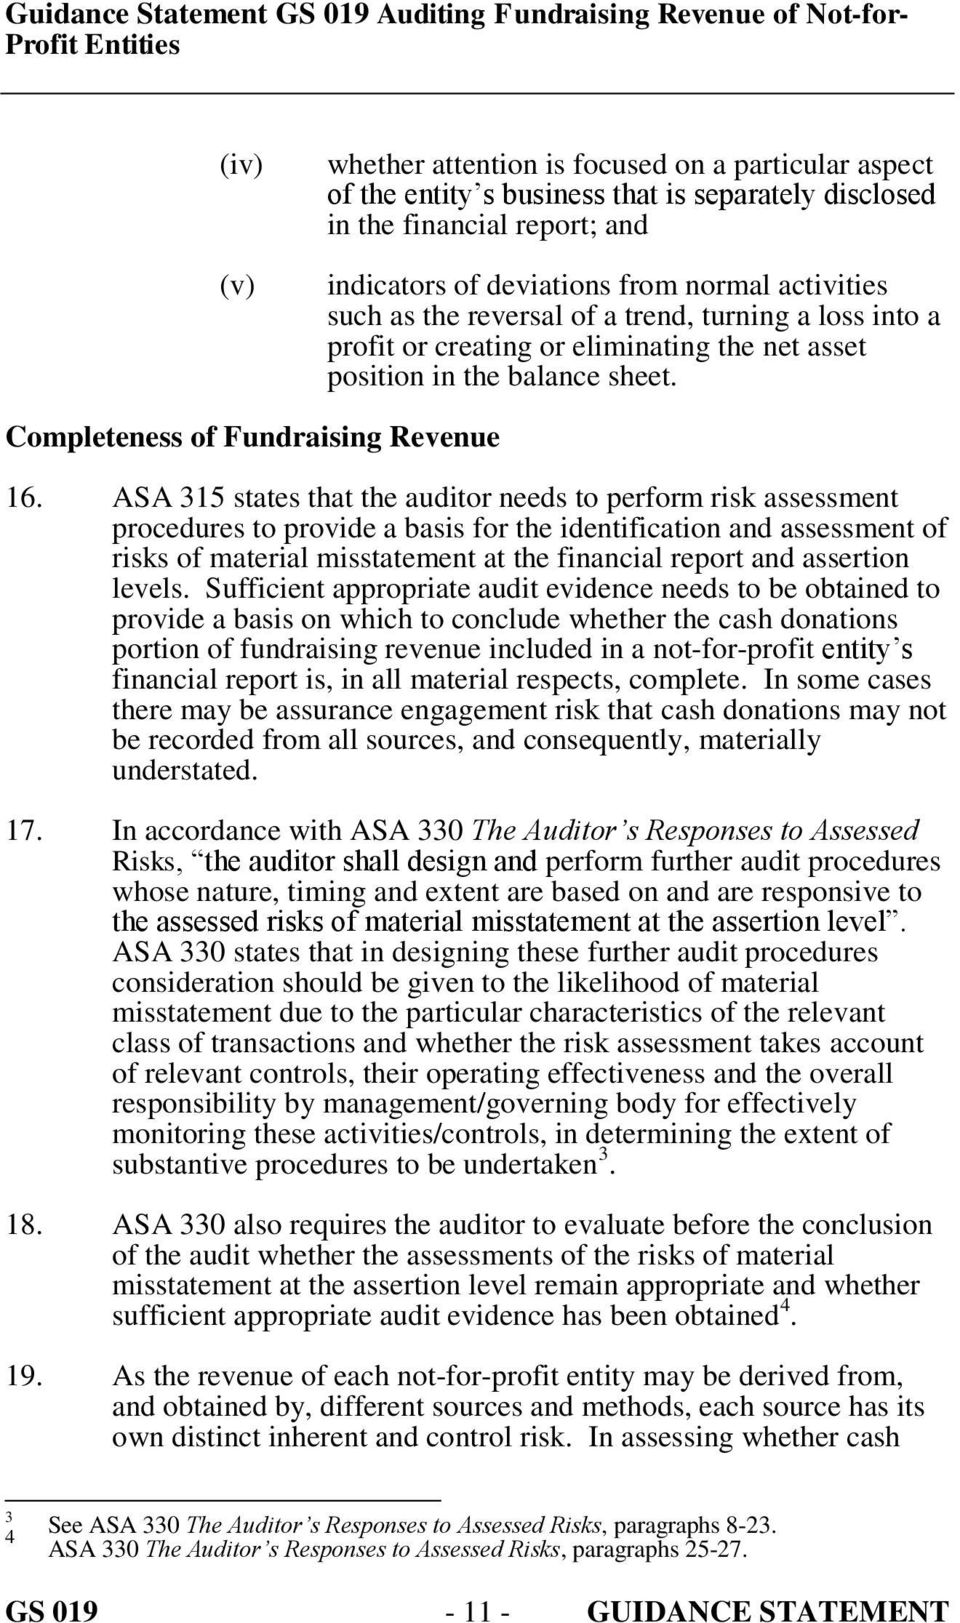 ASA 315 states that the auditor needs to perform risk assessment procedures to provide a basis for the identification and assessment of risks of material misstatement at the financial report and